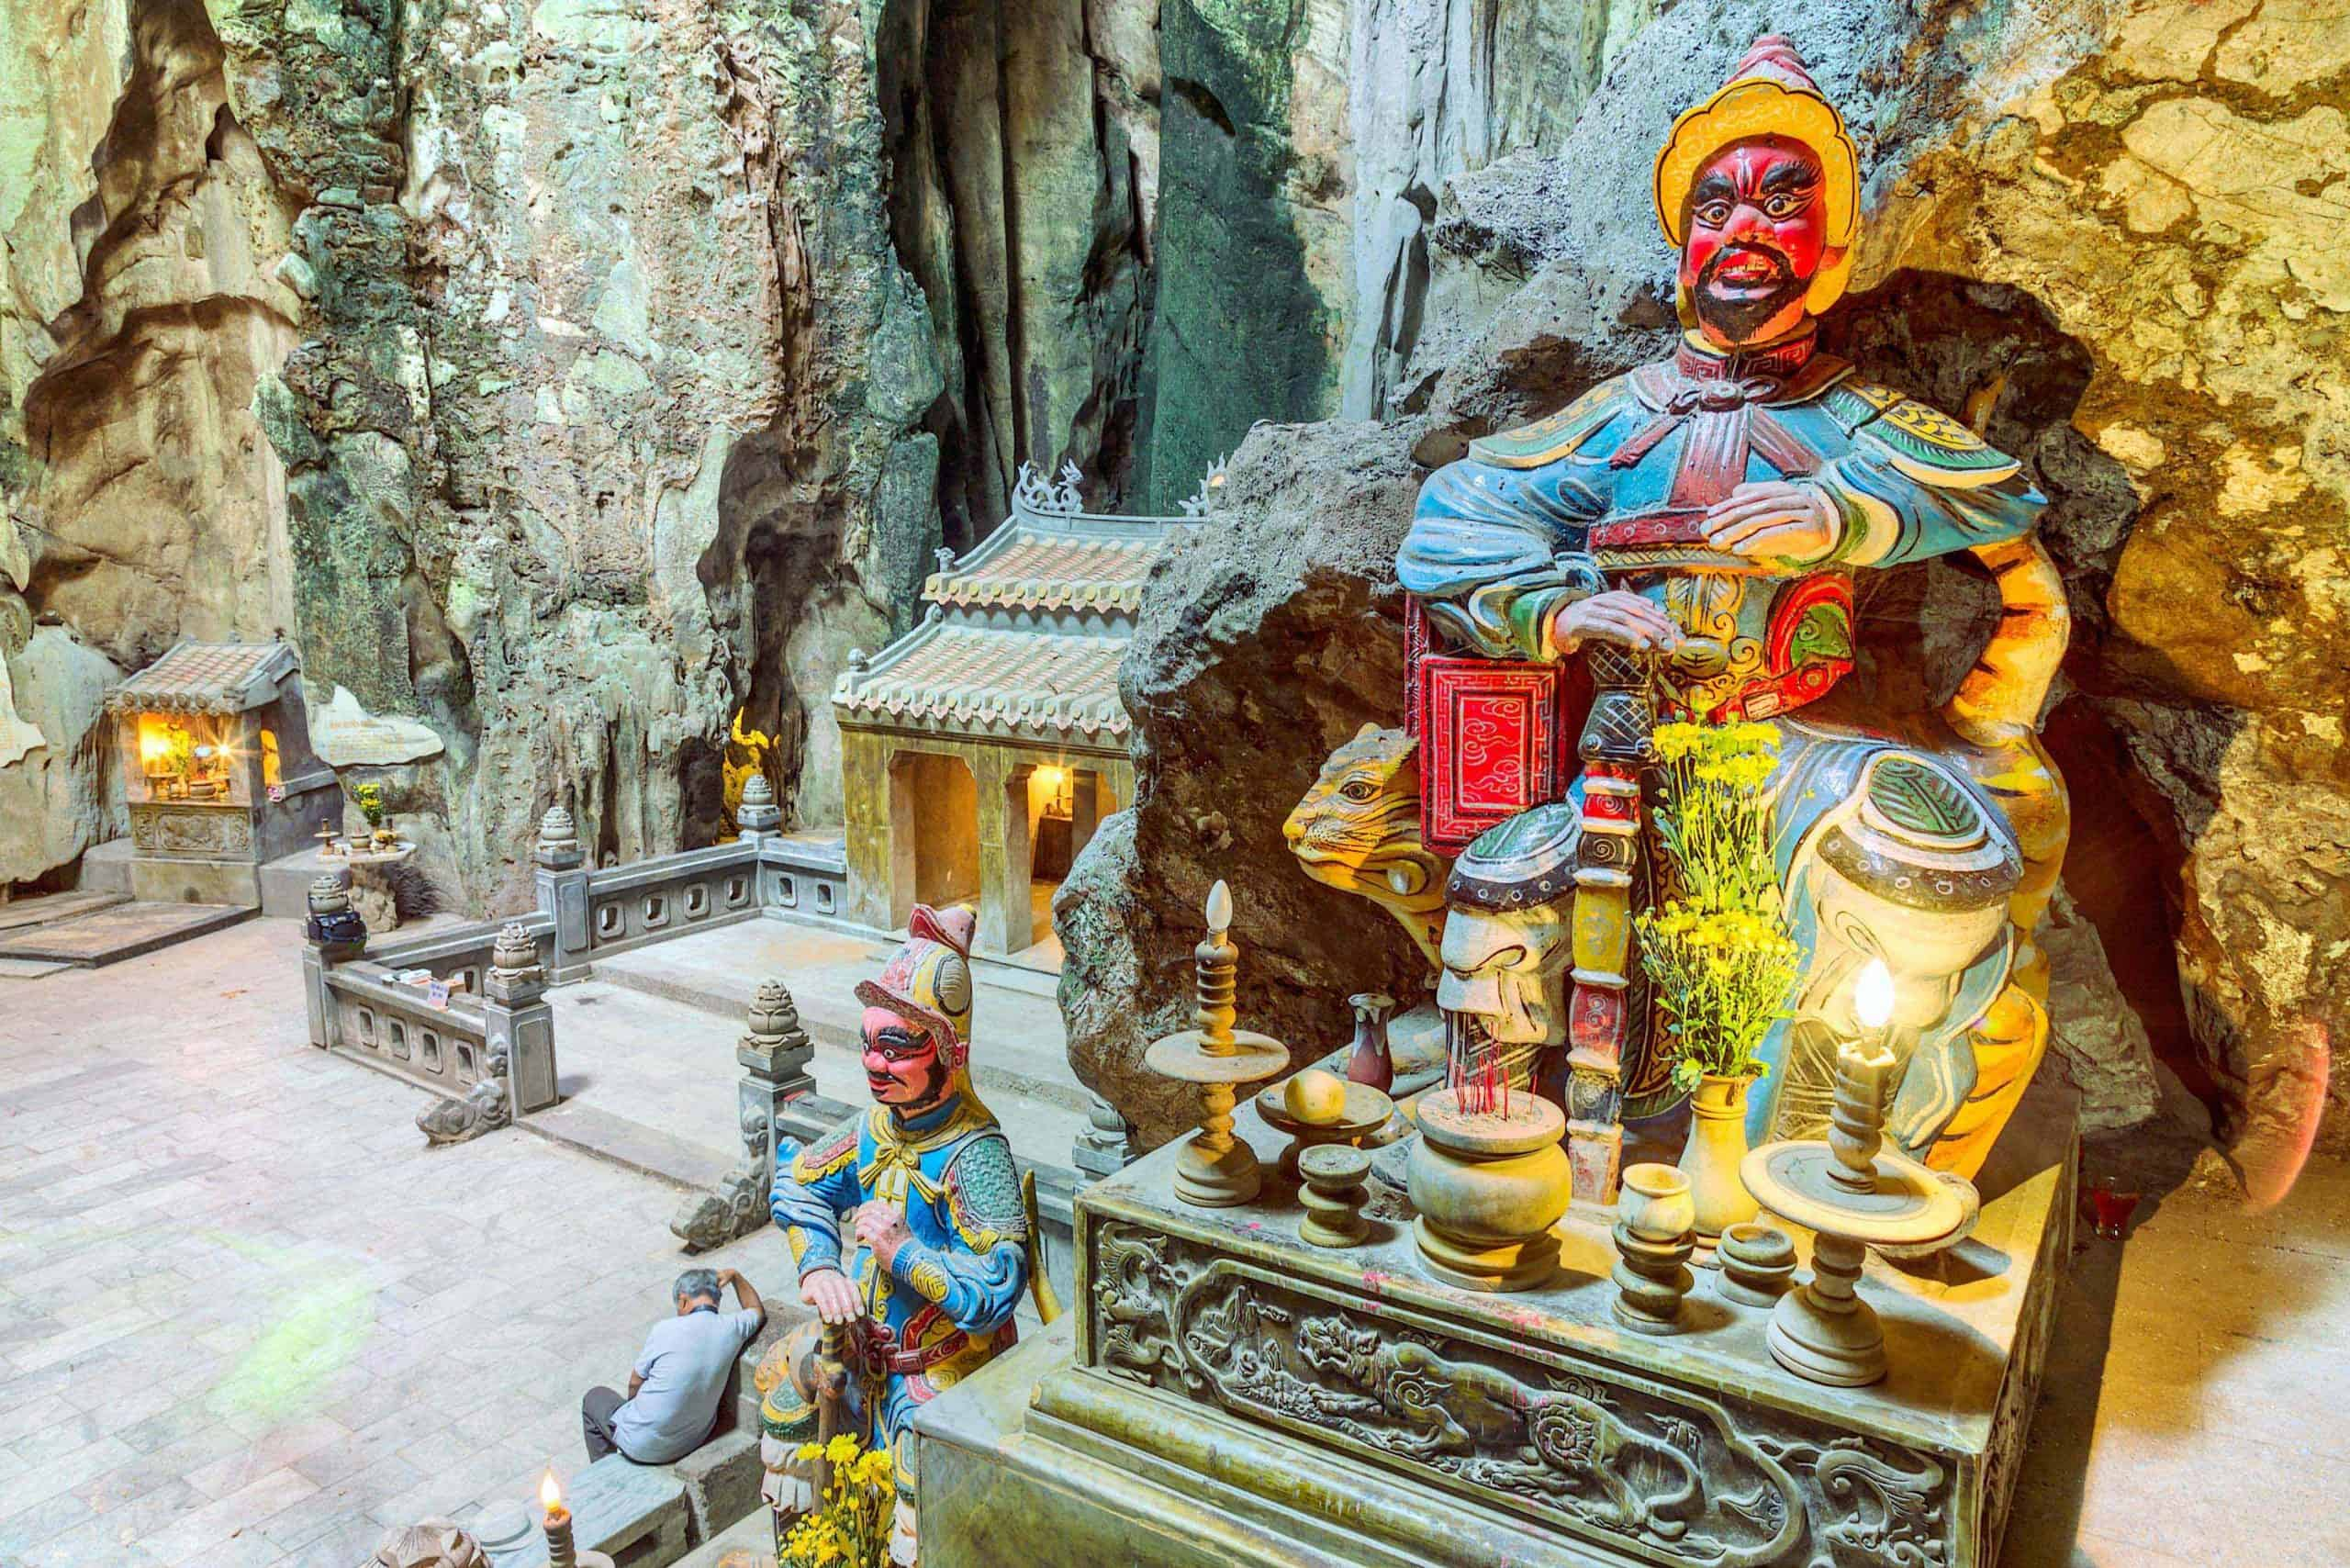 Highlights of Hoa Nghiem cave